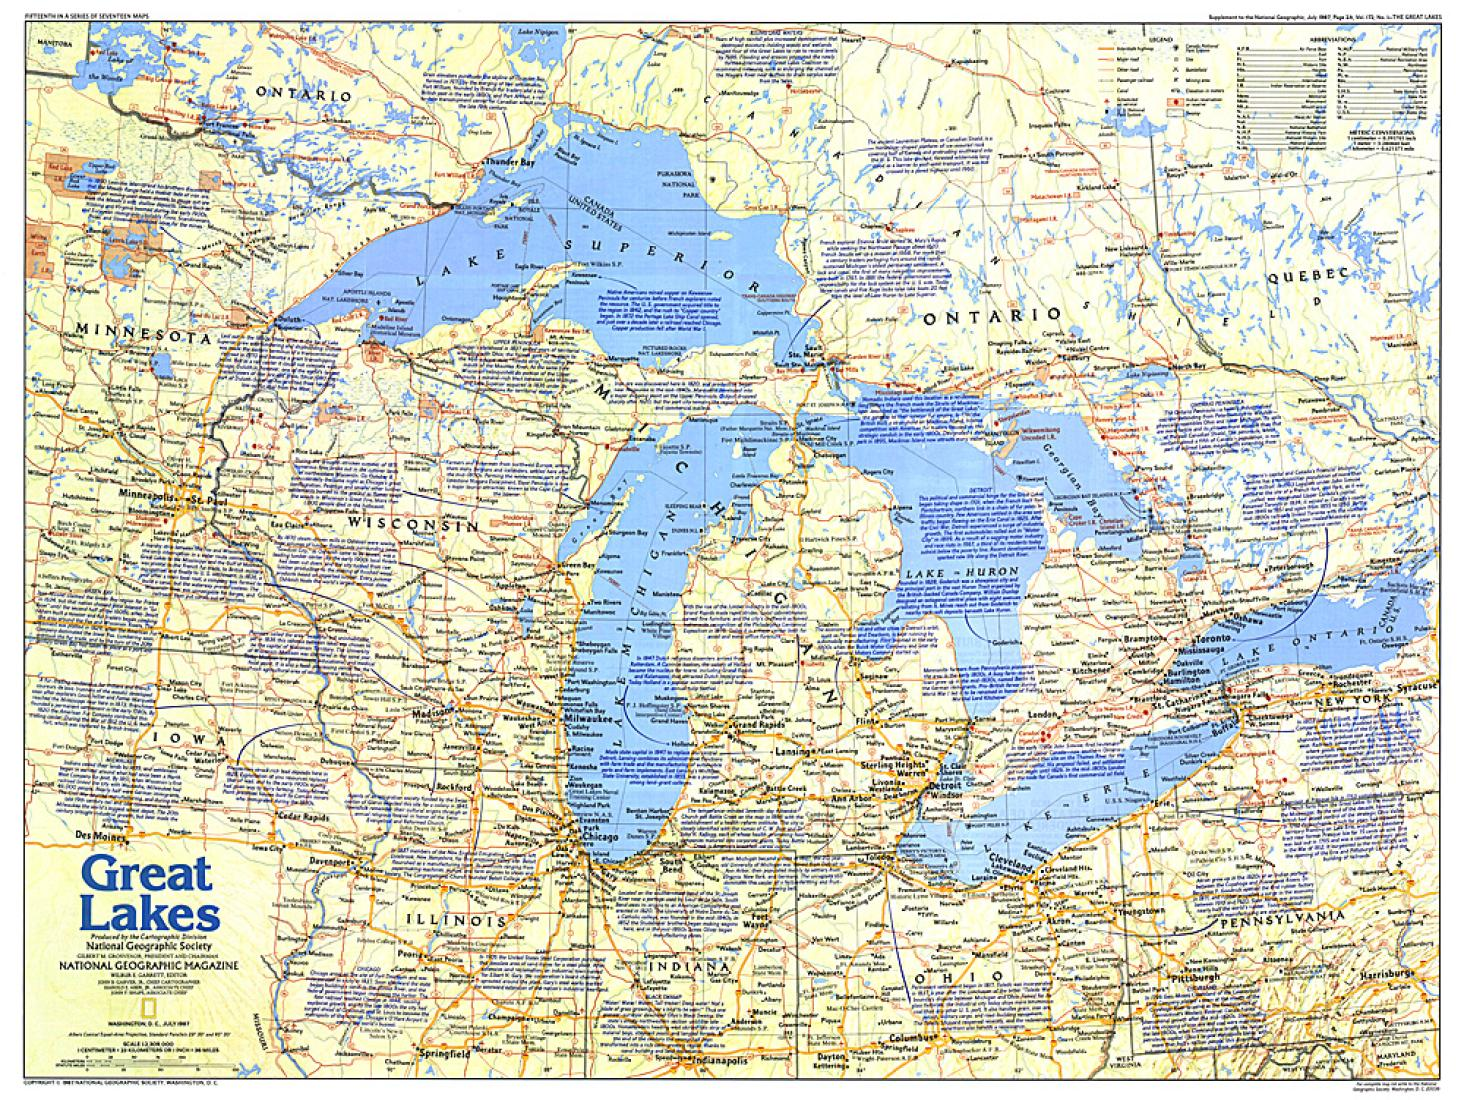 Great Lakes Map Side 1 By National Geographic Maps